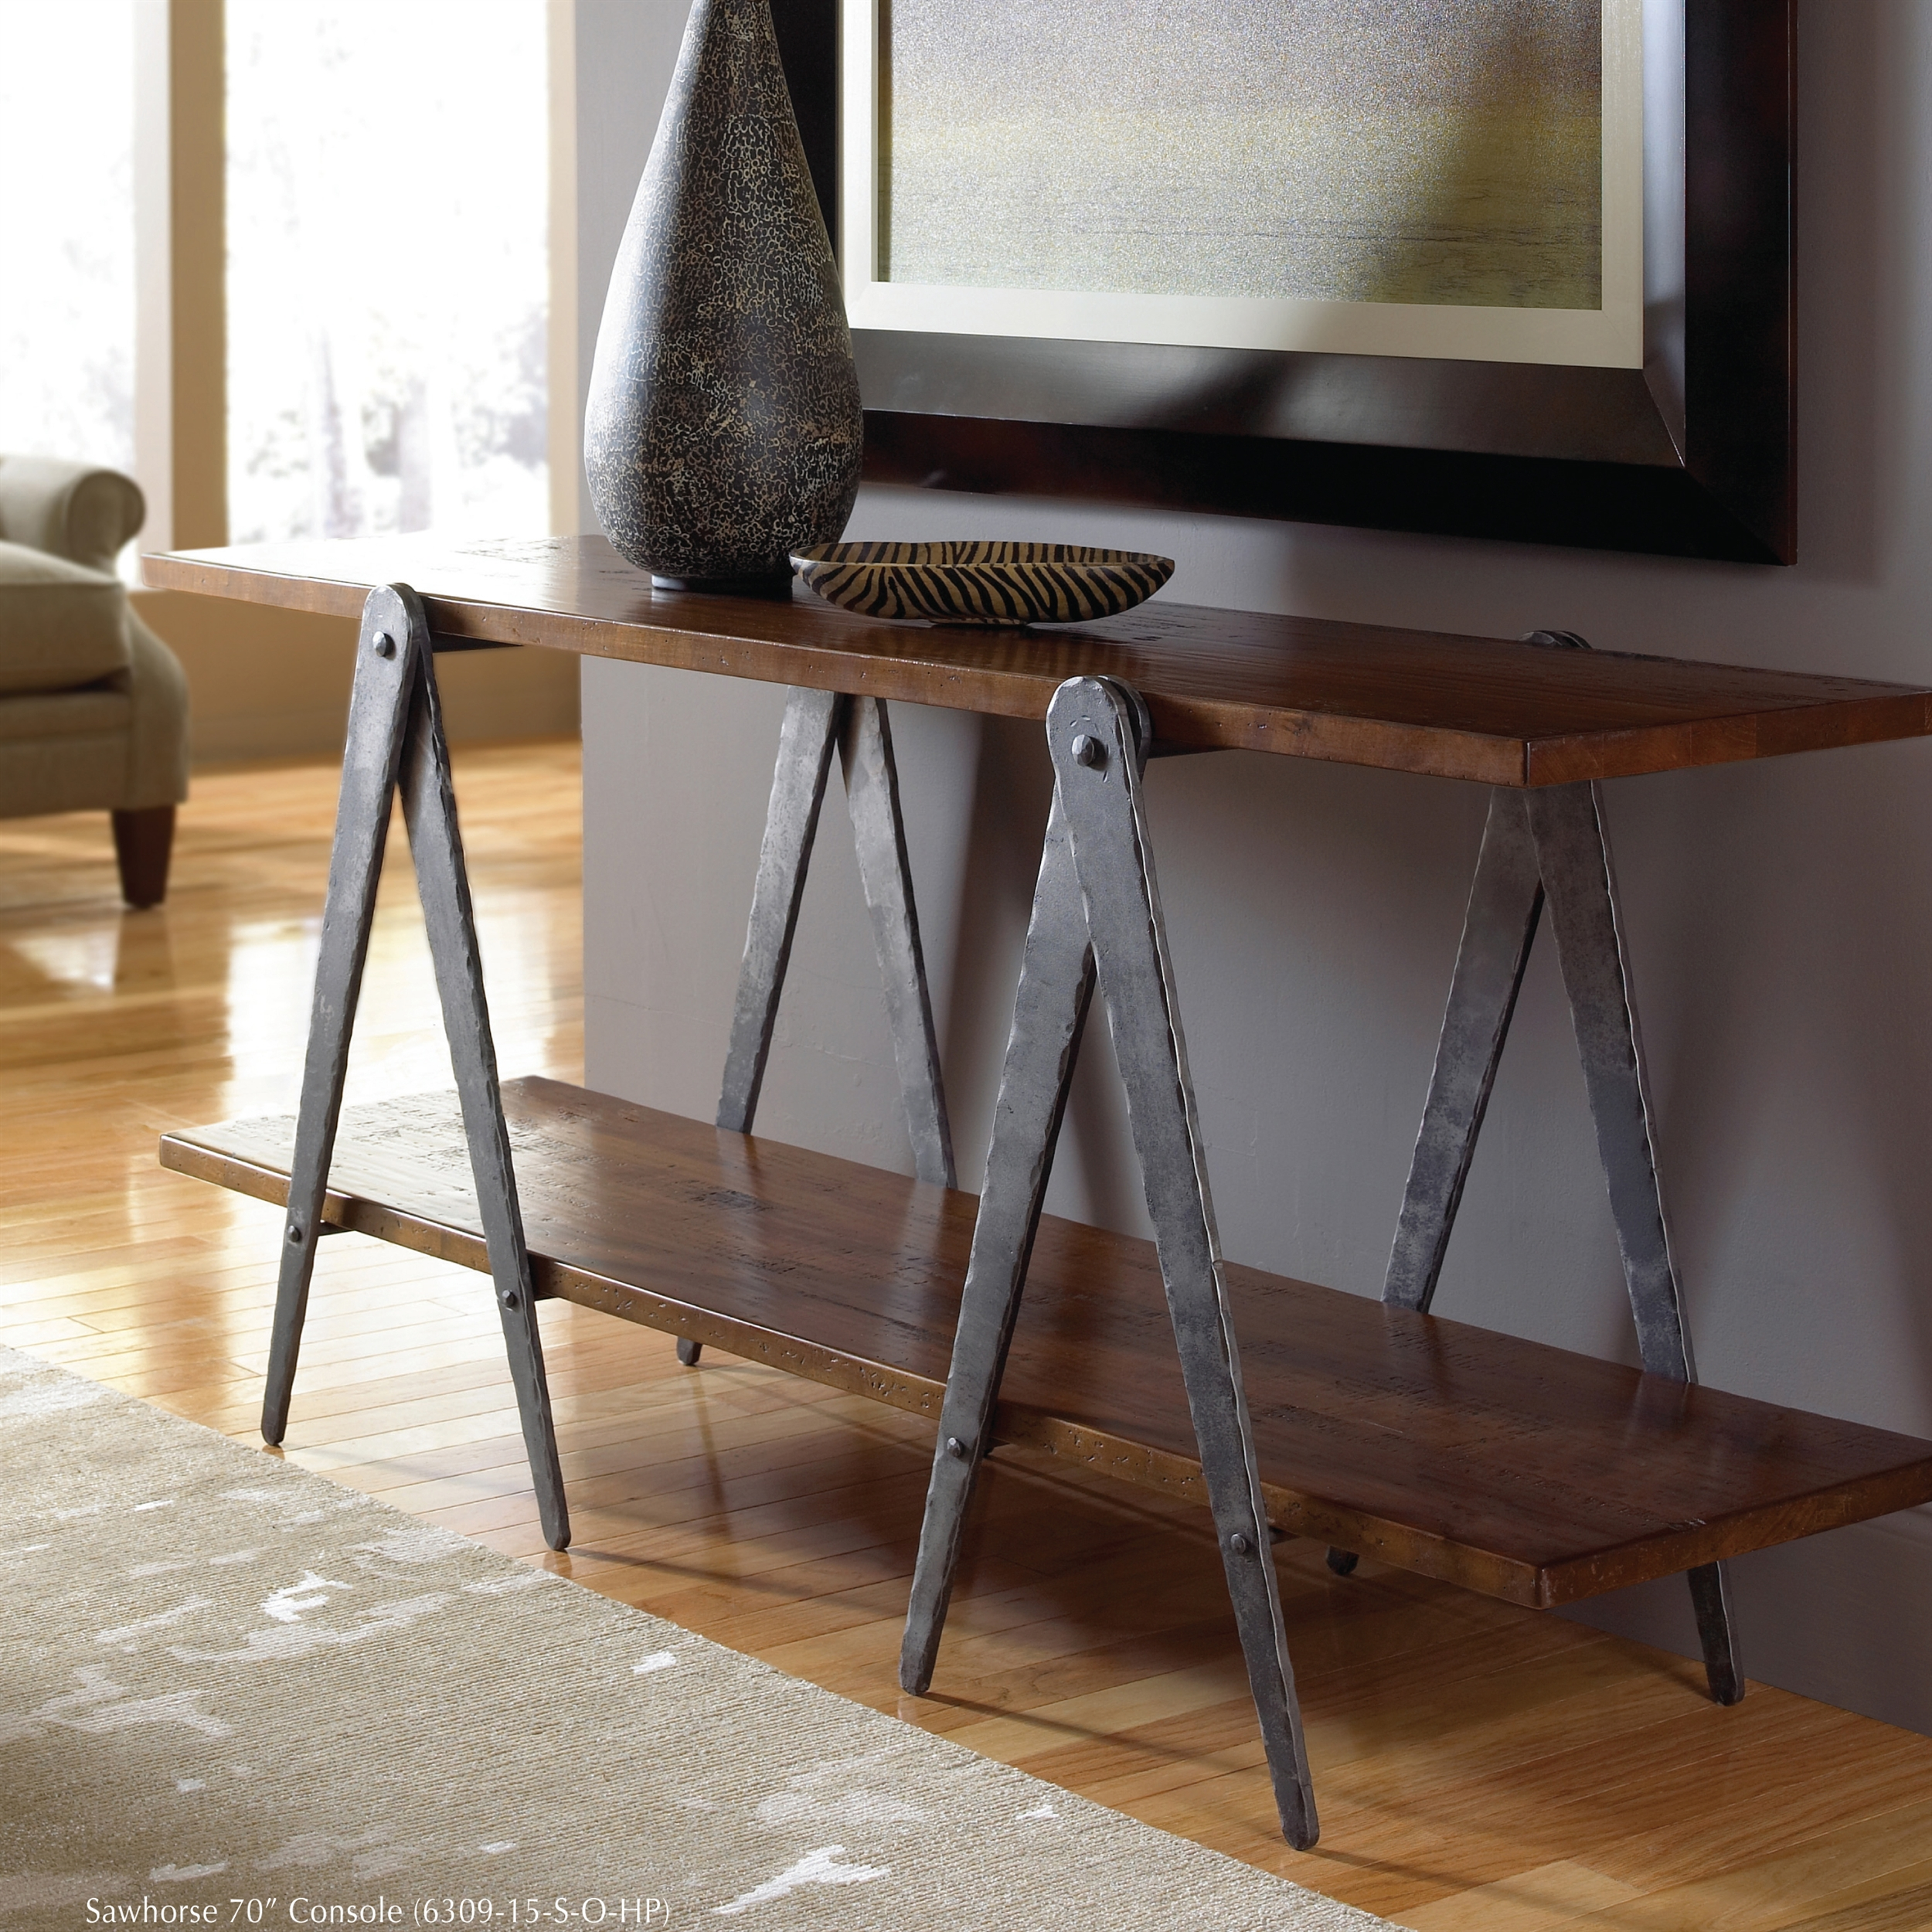 Beau ... Console Table That Measures 70. Larger Photo